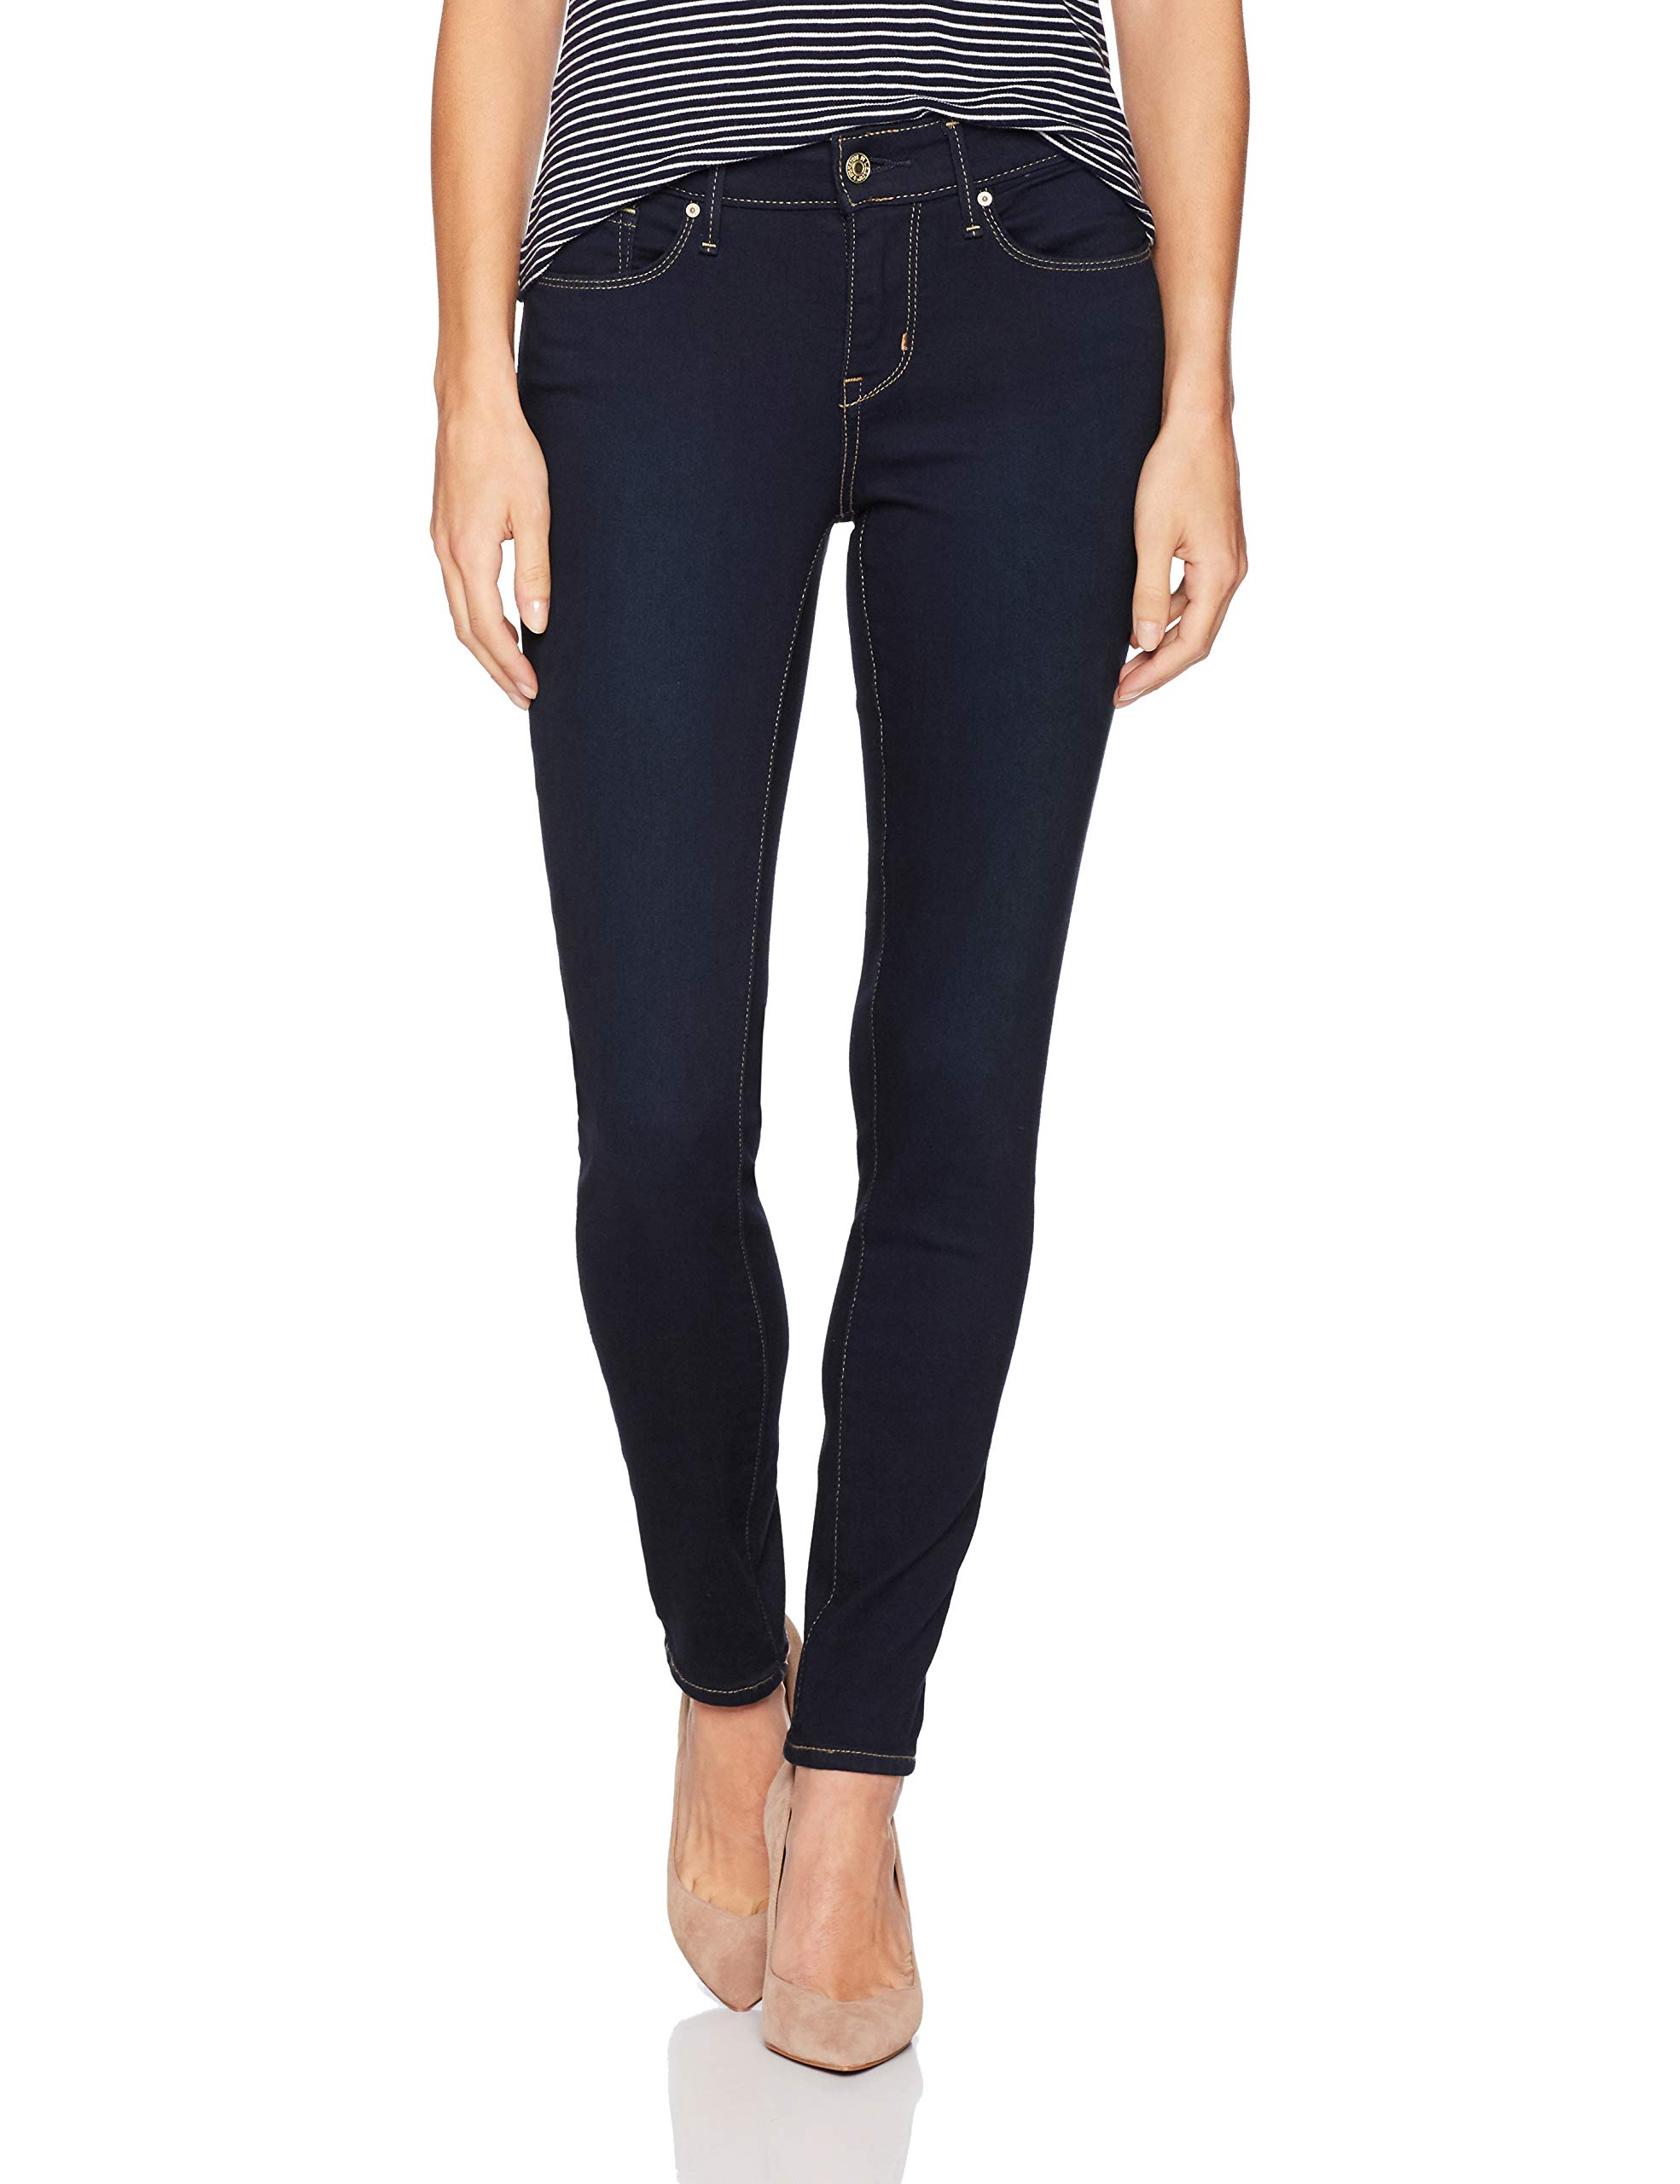 Signature by Levi Strauss & Co. Gold Label Women's Modern Skinny Jeans, Mascara, 12 Medium by Signature by Levi Strauss & Co. Gold Label